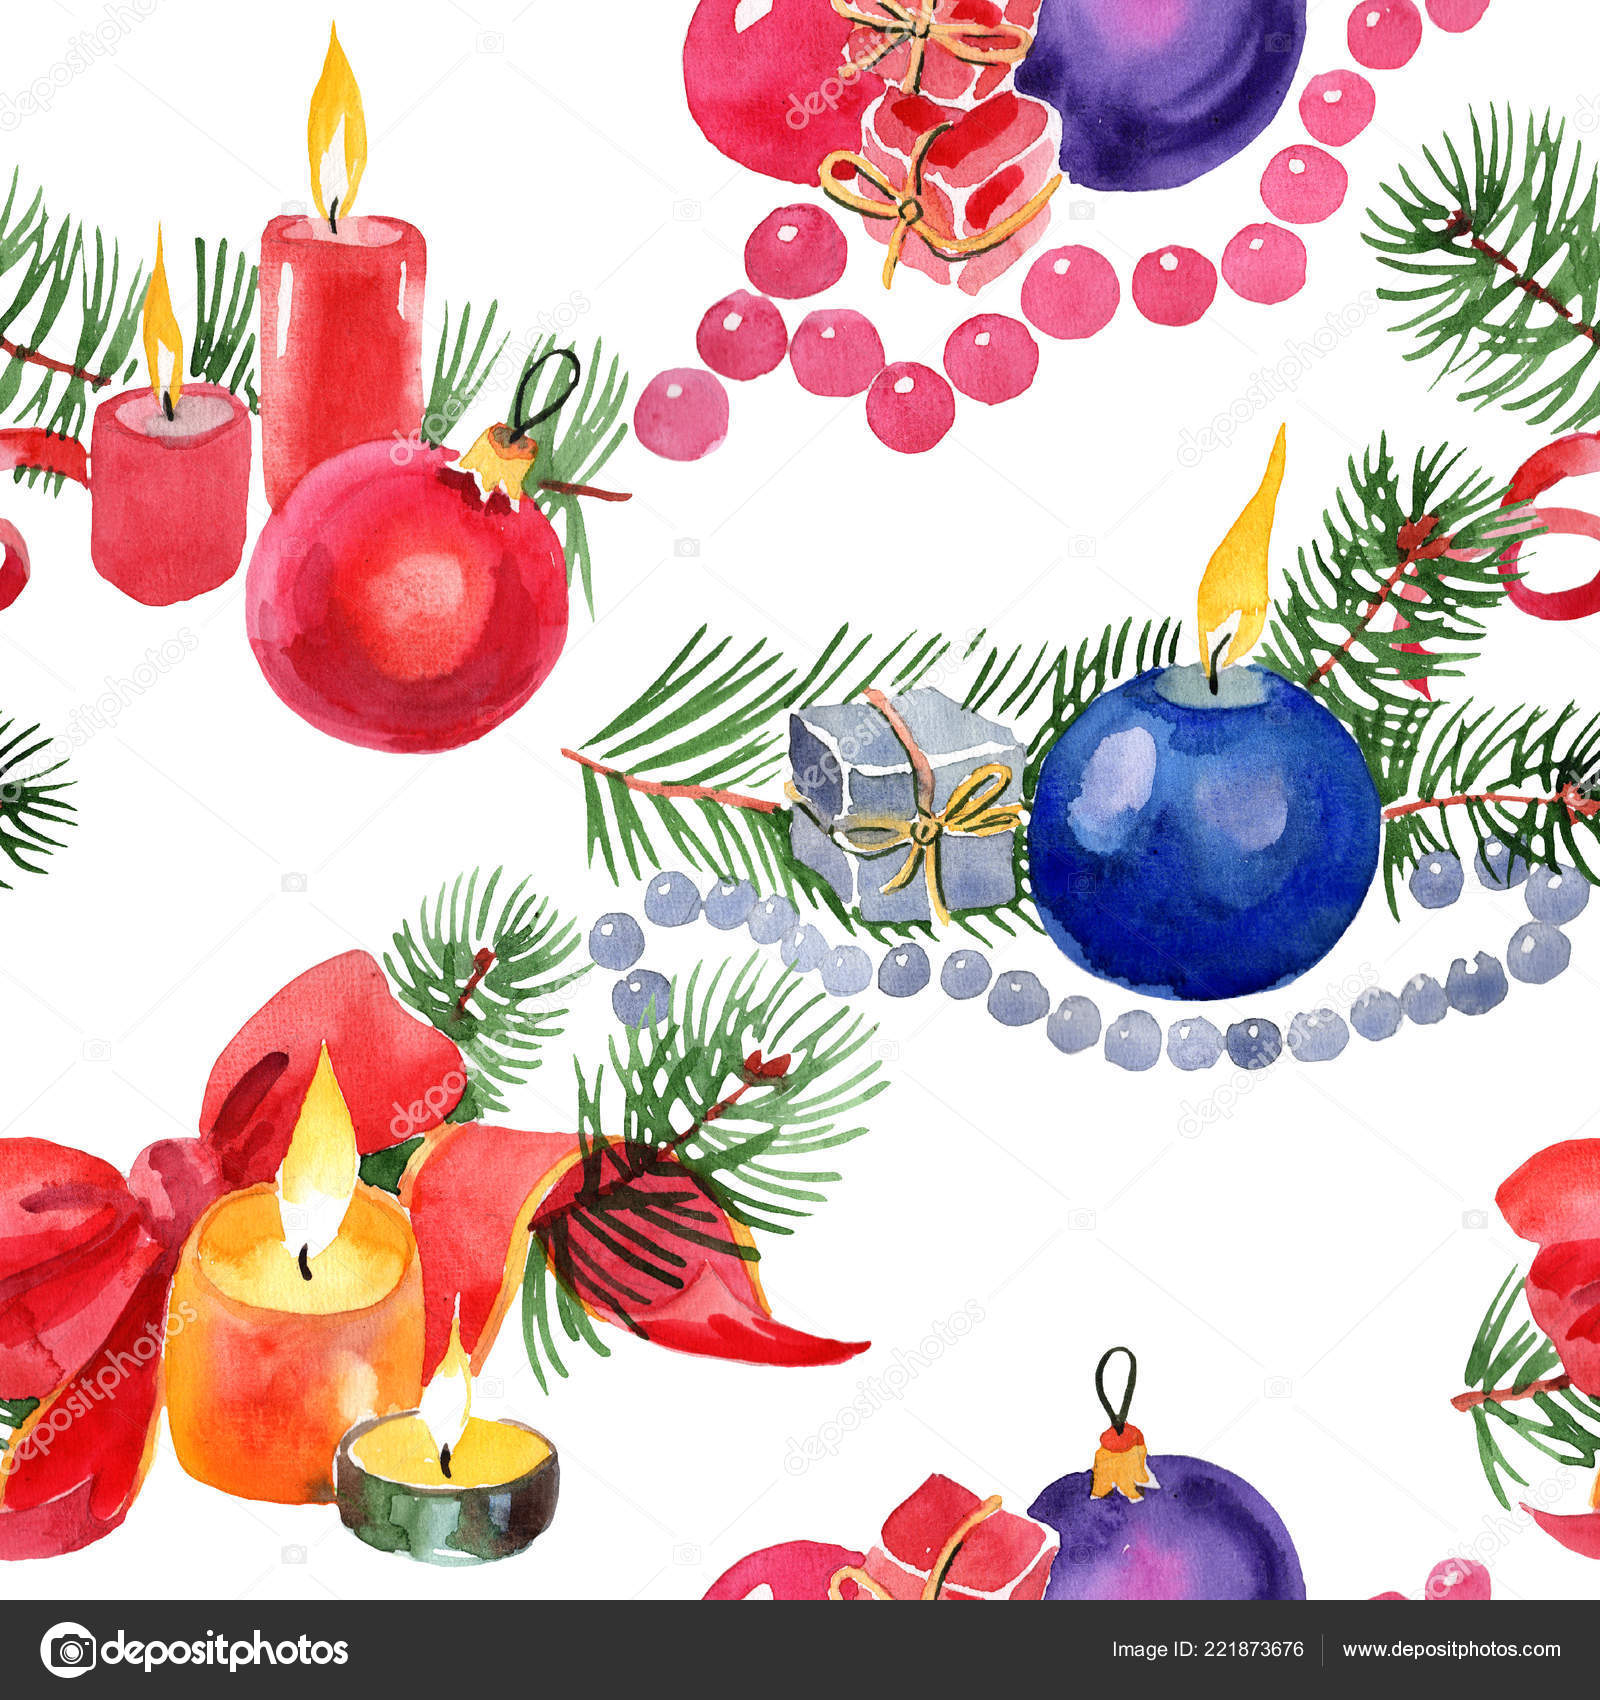 Christmas Winter Holiday Candles And Christmas Toys In A Watercolor